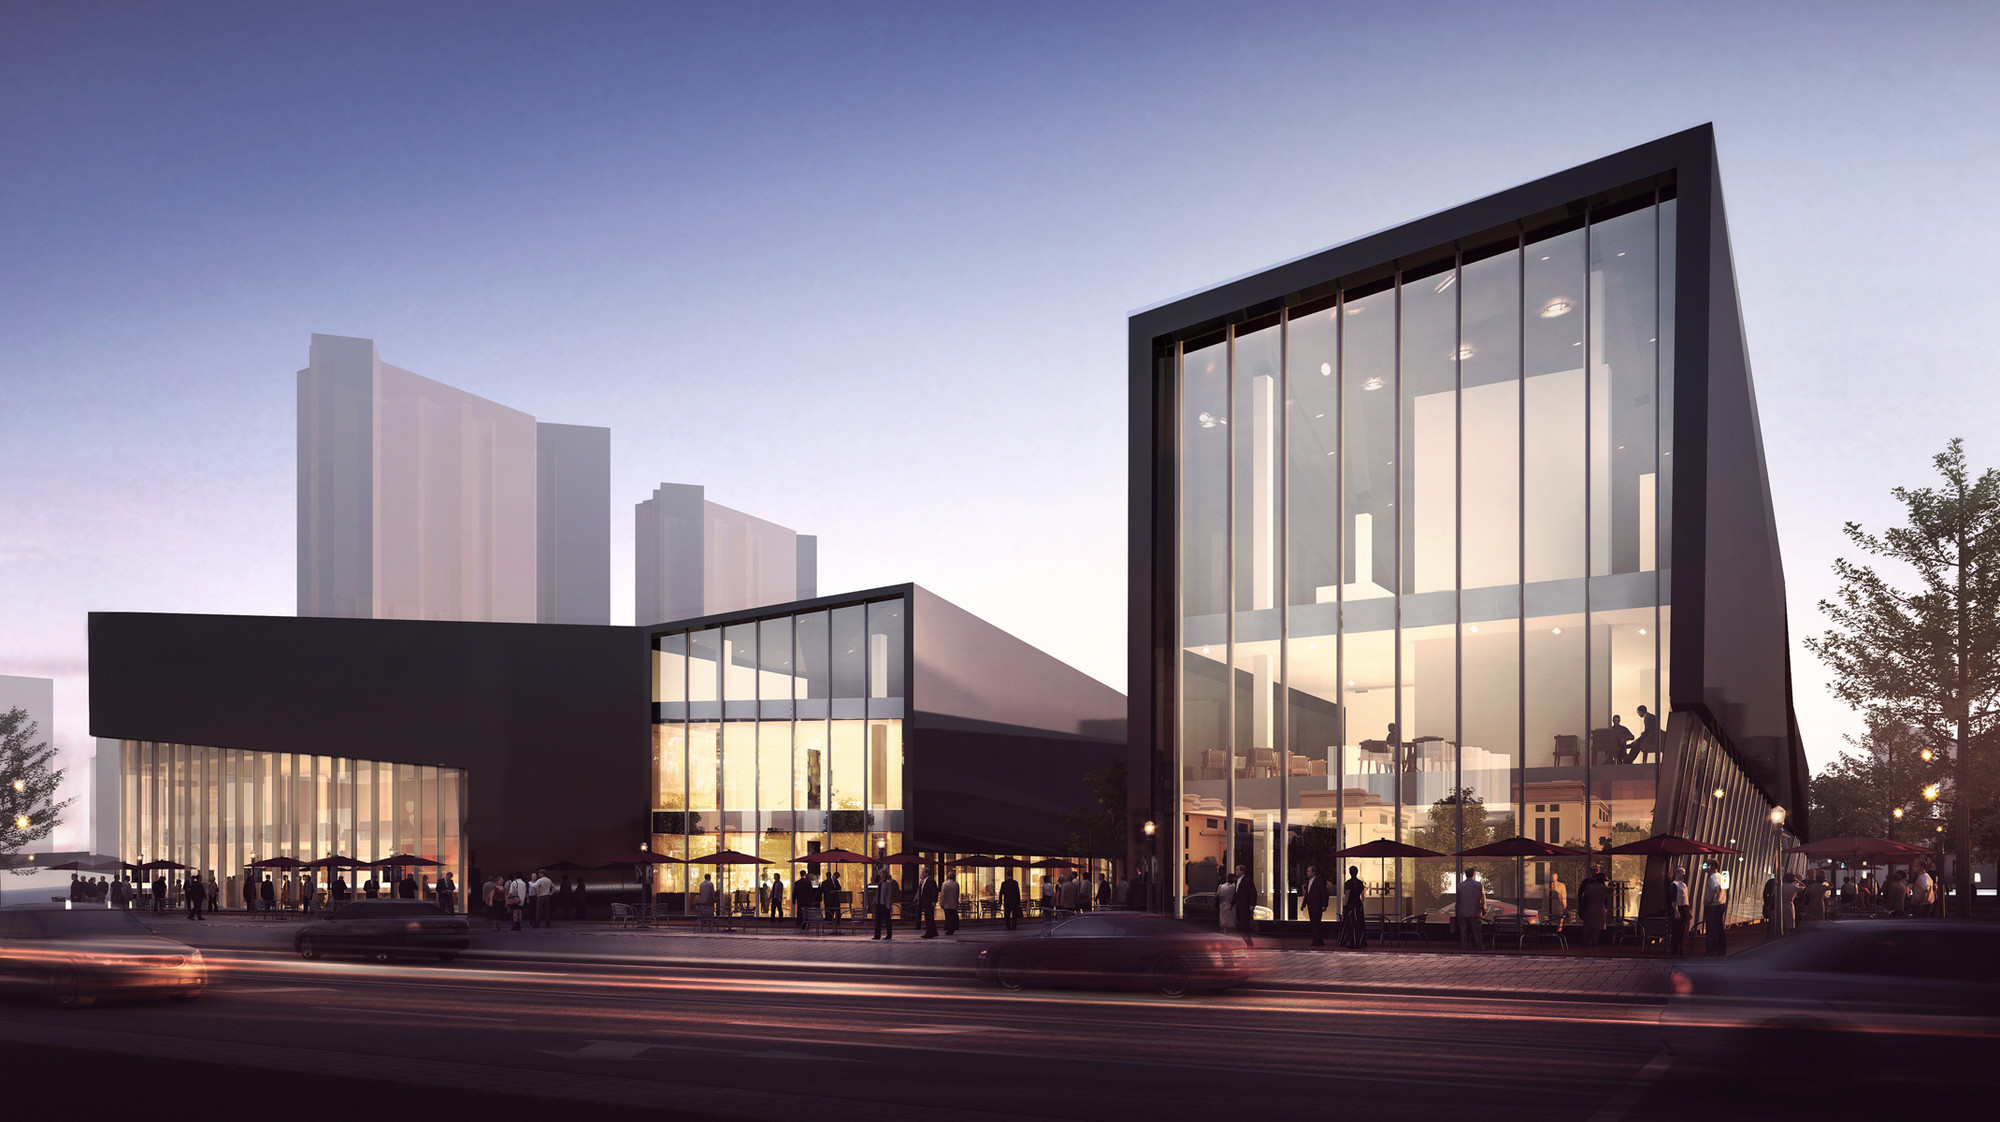 Rta office designs service center for china 39 s for Architectural design services